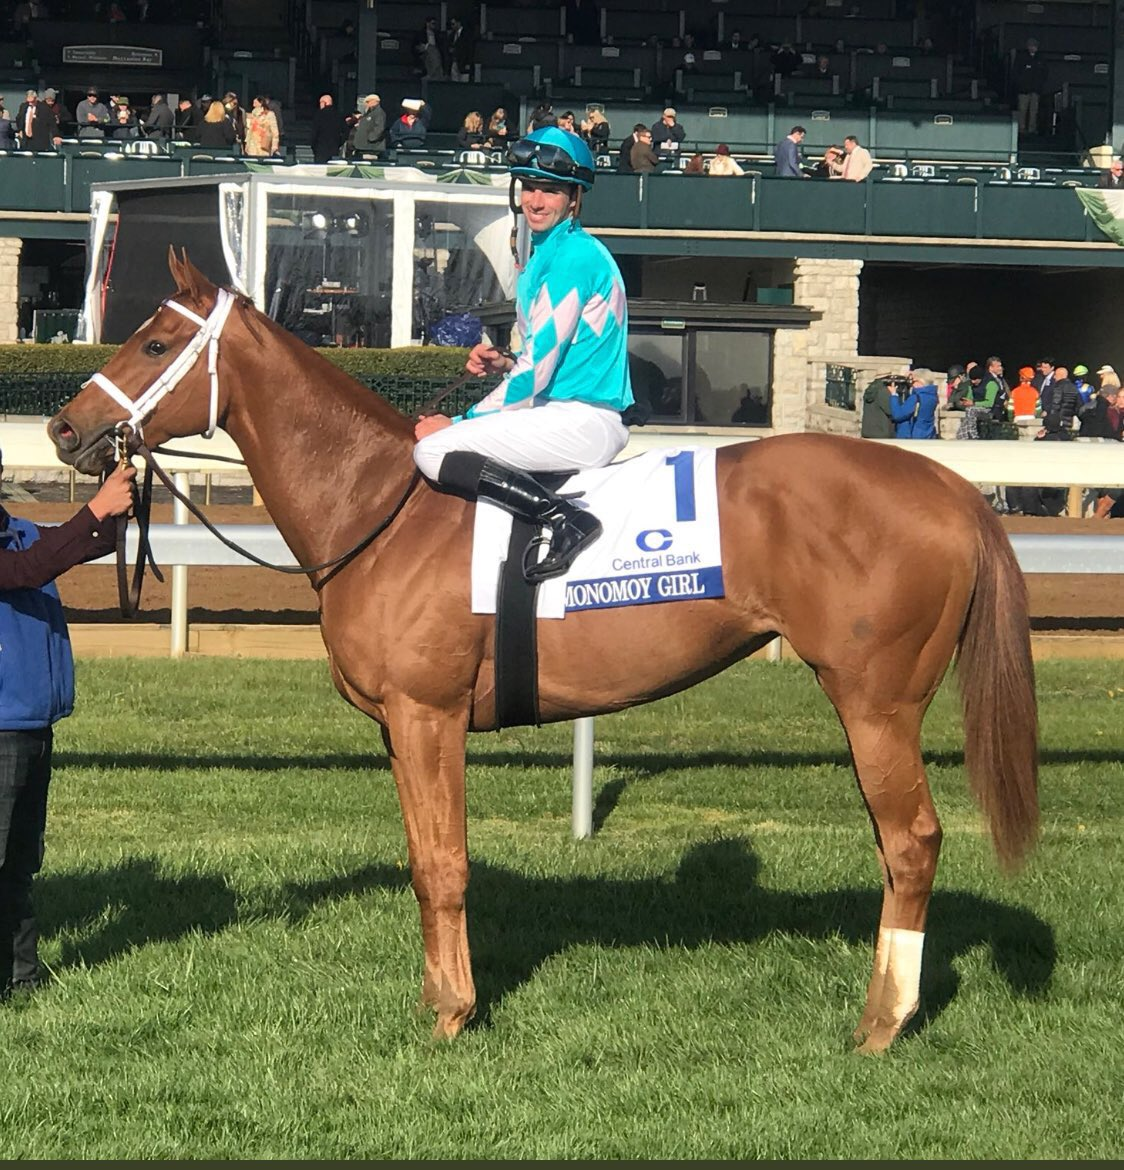 test Twitter Media - 1st week of April has me thinking of the G1 Ashland @keenelandracing where Monomoy Girl gave @bradcoxracing first G1 win and @BSWCrow first G1 public auction win. Such a special week thanks to a truly special filly. Was looking forward to watching British Idiom try to do the same https://t.co/PLQAKGcwZ9